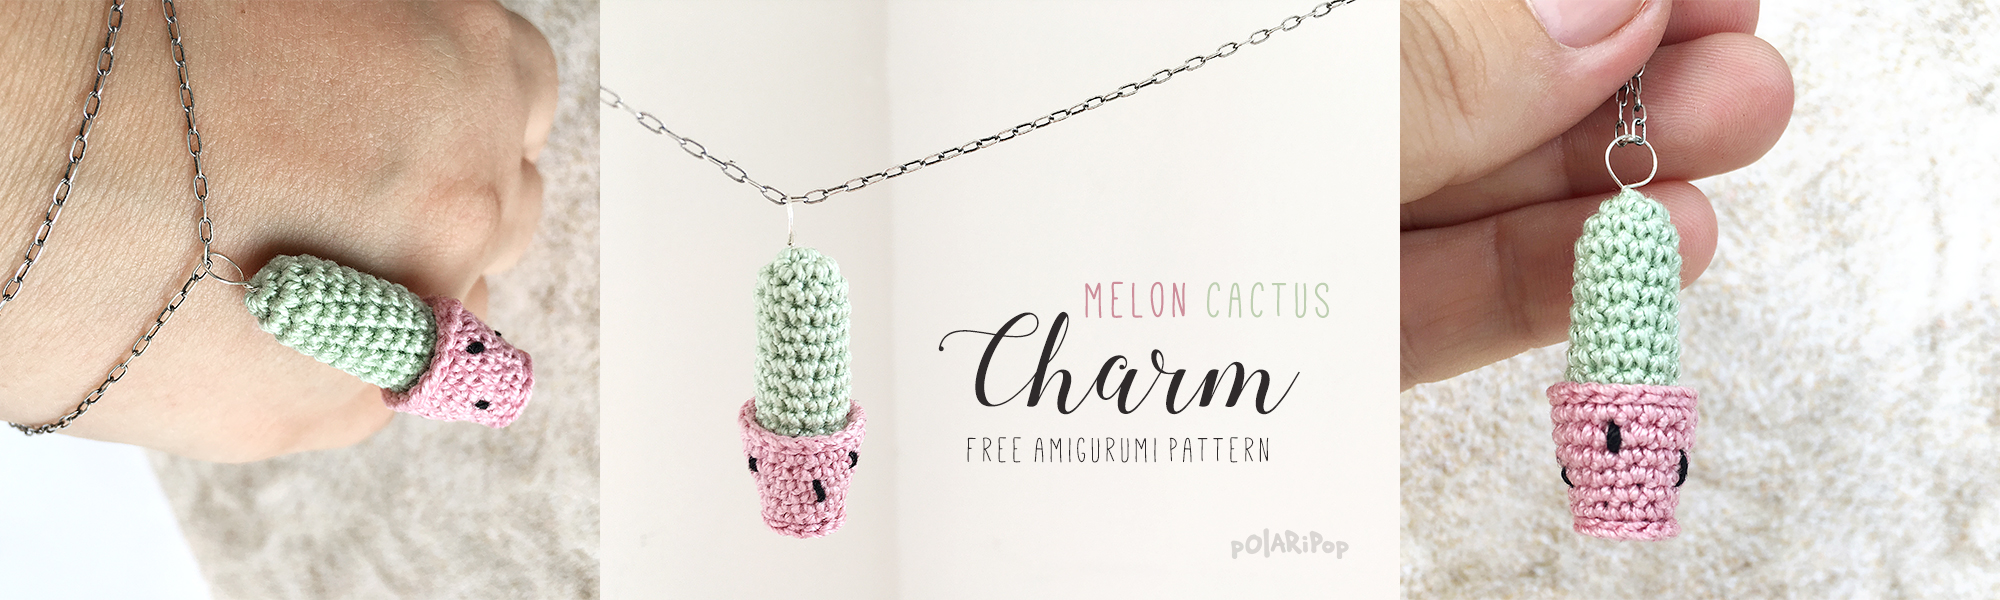 13 Spunky Crochet Cactus Patterns | 600x2000